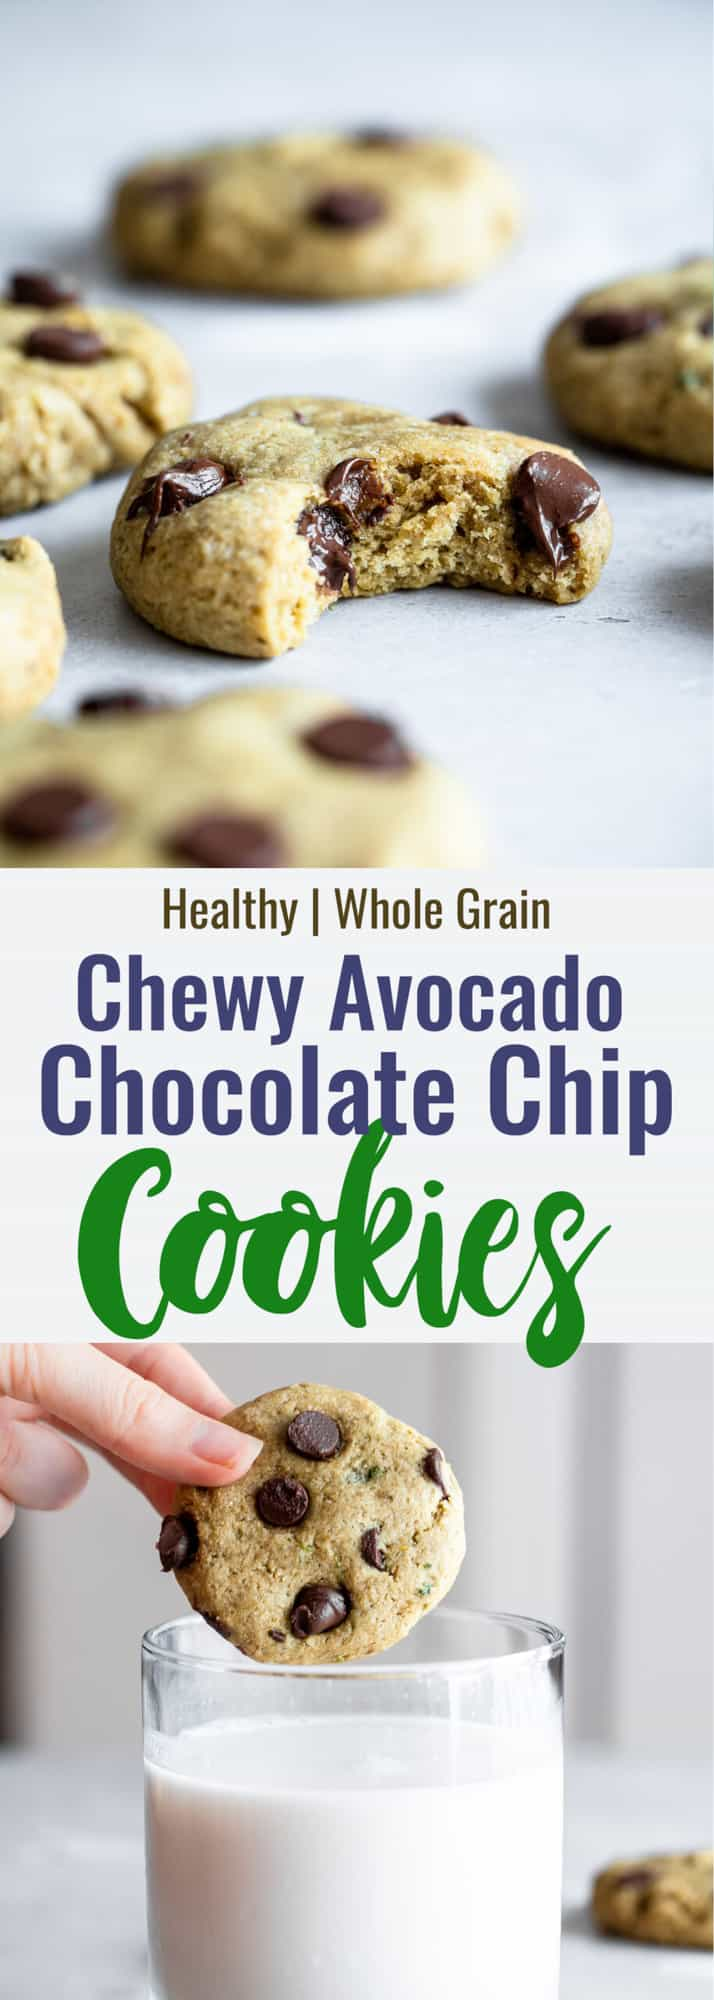 Healthy Chocolate Chip Cookies collage photo